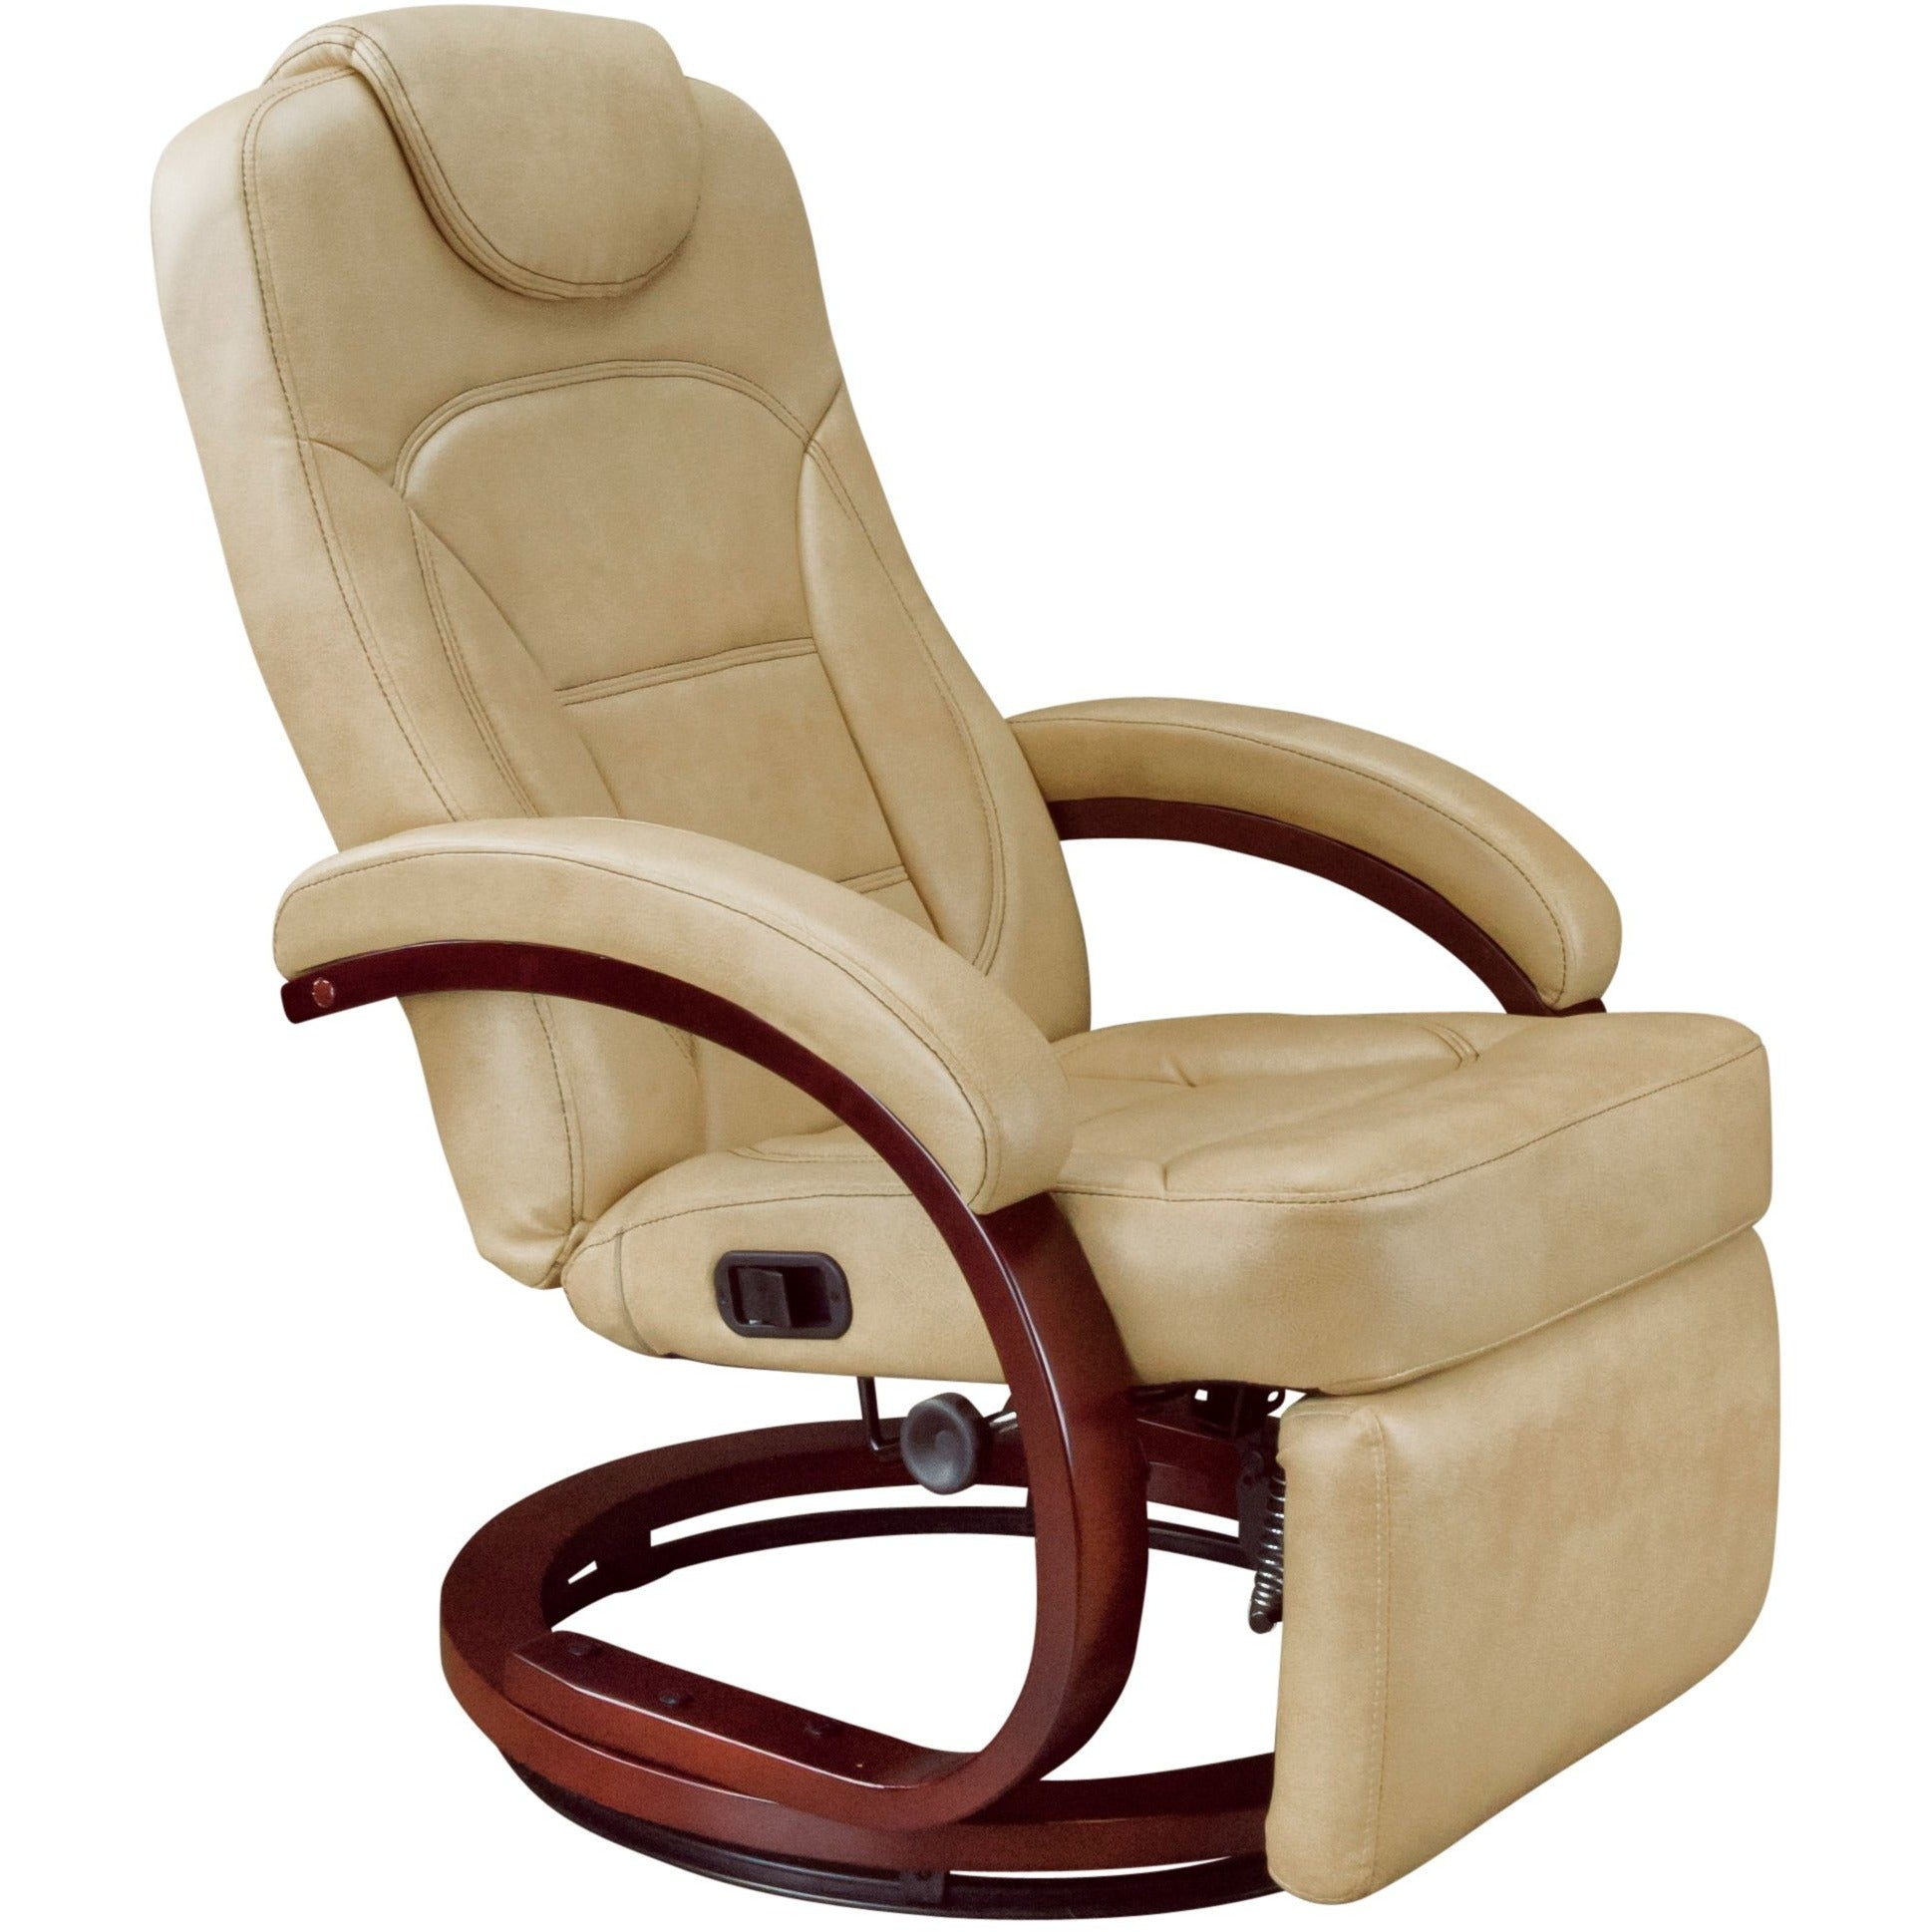 Lippert 426797 Euro Recliner Chair With Footrest in Alternate Latte